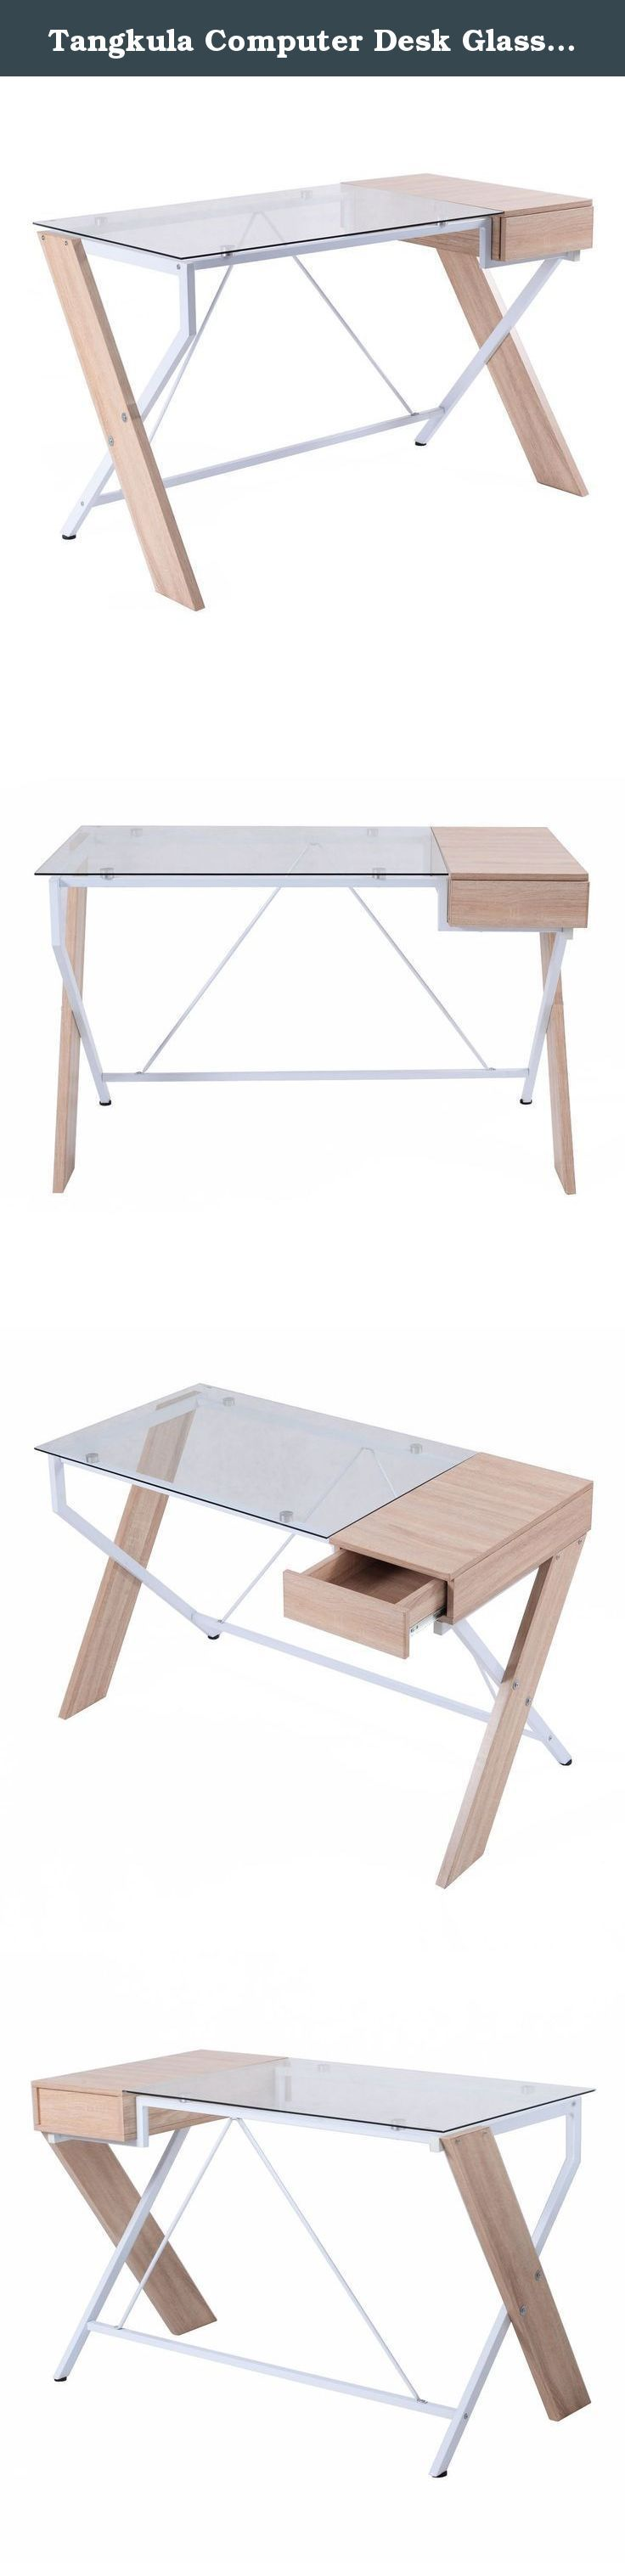 Tangkula Computer Desk Glass Top with Drawer Compute Desk Table Home Office Furniture. Clear Tempered Glass Top With Sleek Finish Wood Pull Out Drawer For More Storage Powder-Coated Steel Frame For Durable Use Classic X-Frame Leg Design Simple Assembling Need.